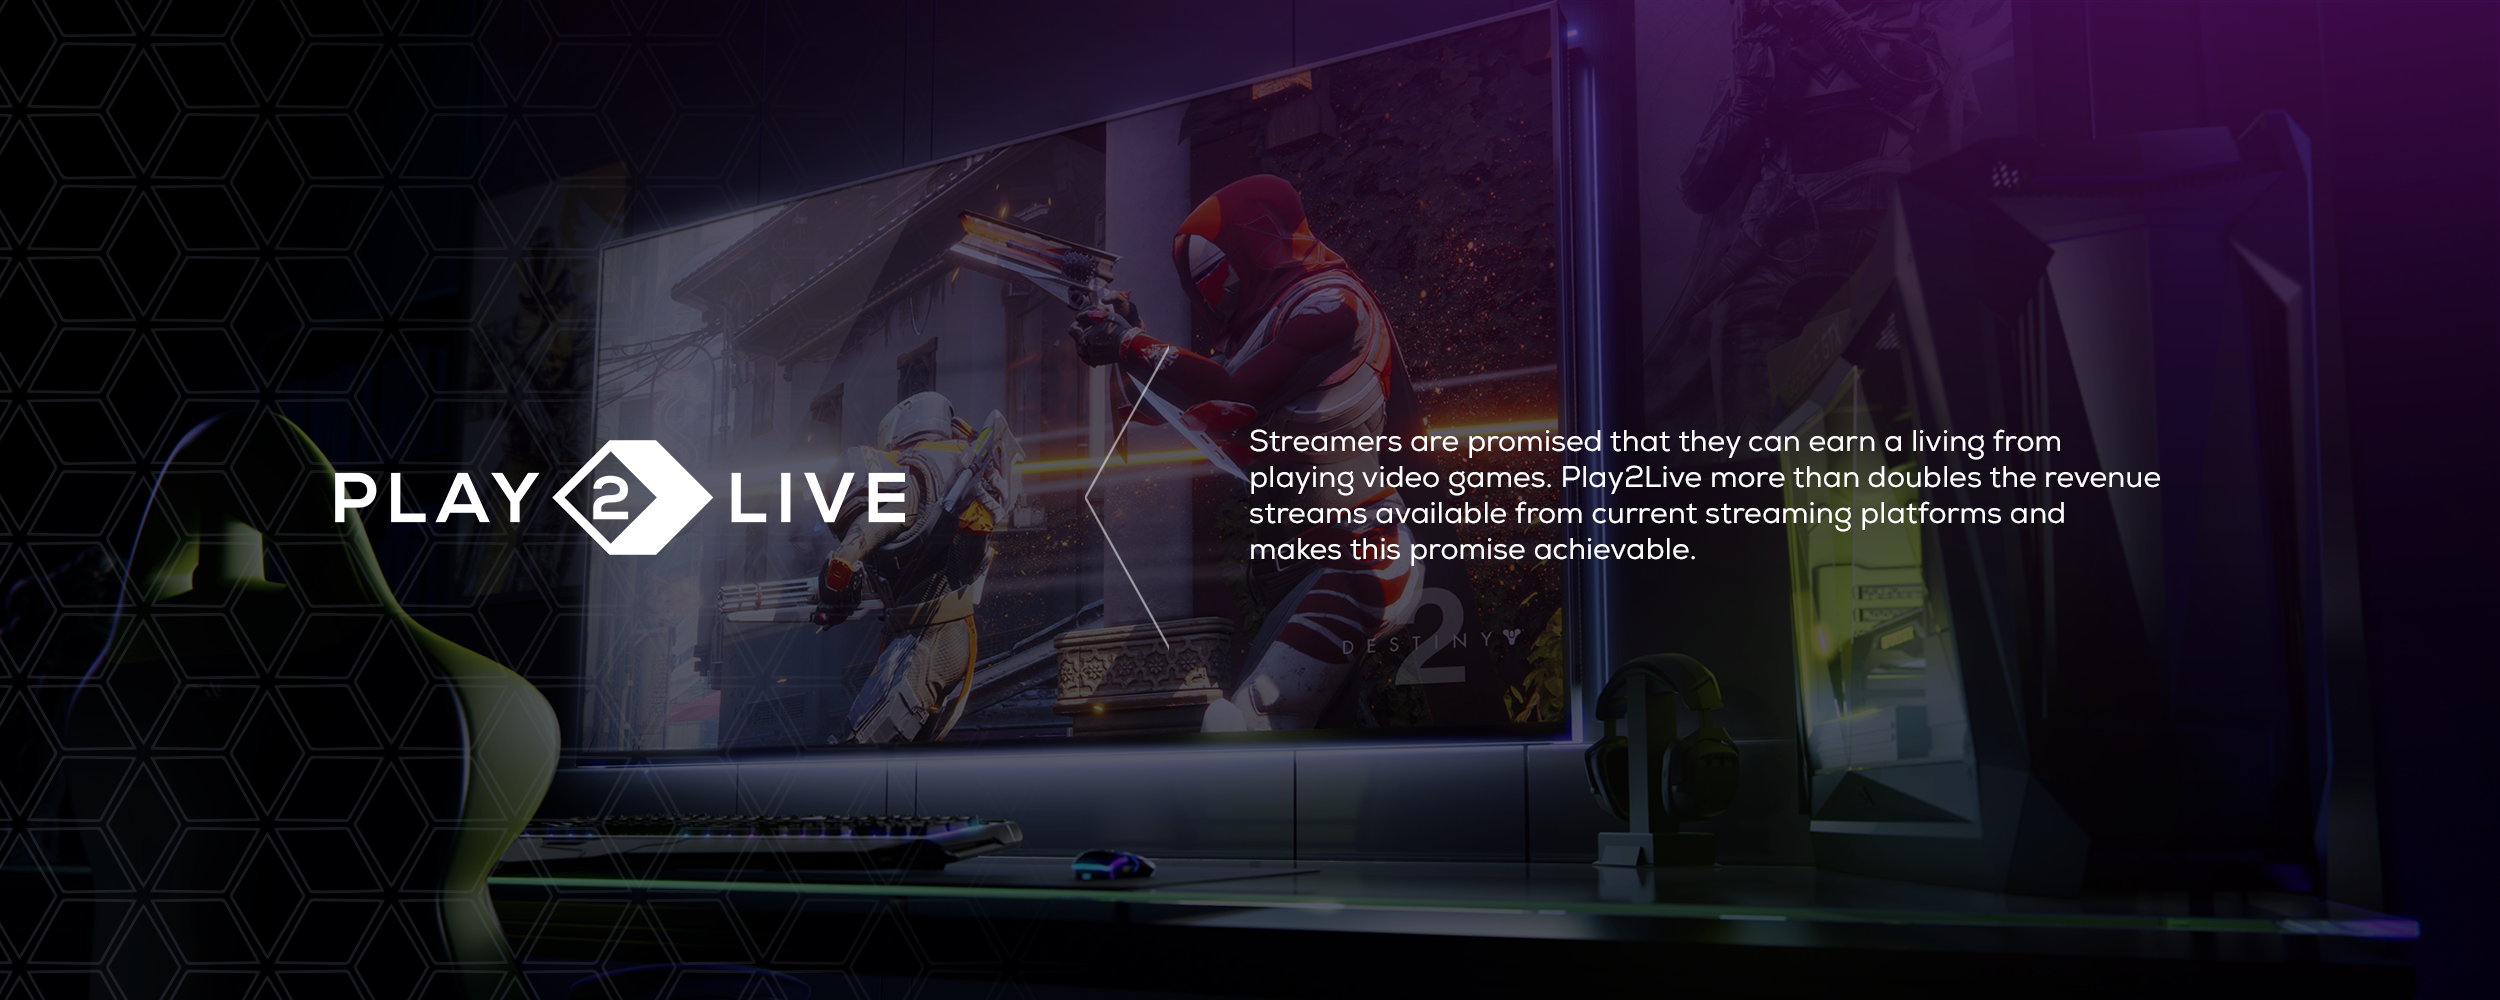 Play2Live turns promises to streamers into viable options